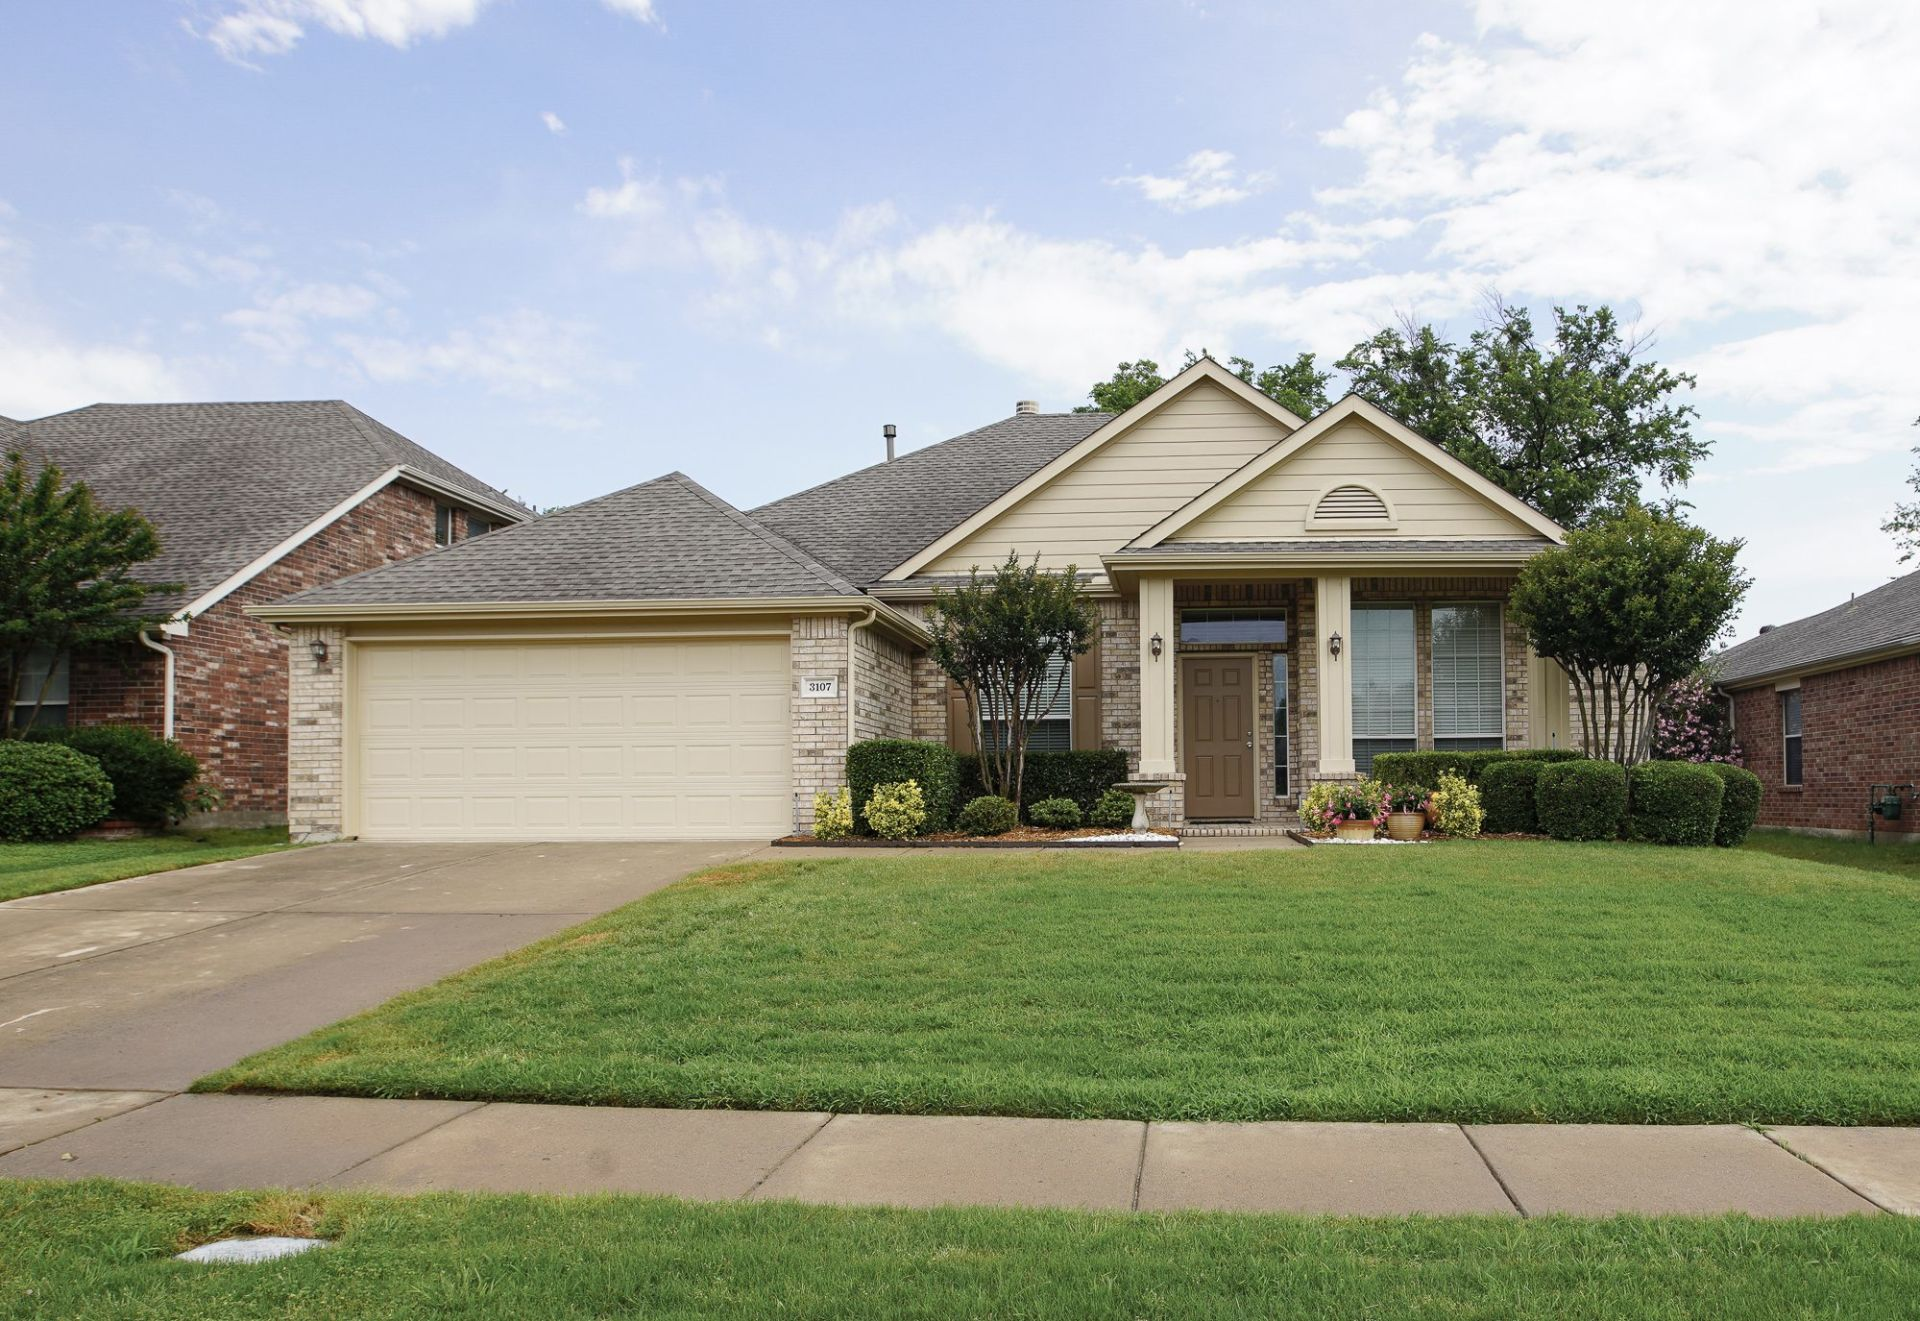 WHAT DO IPODS AND BLOCKBUSTER HAVE TO DO WITH A HOME FOR SALE IN WYLIE?